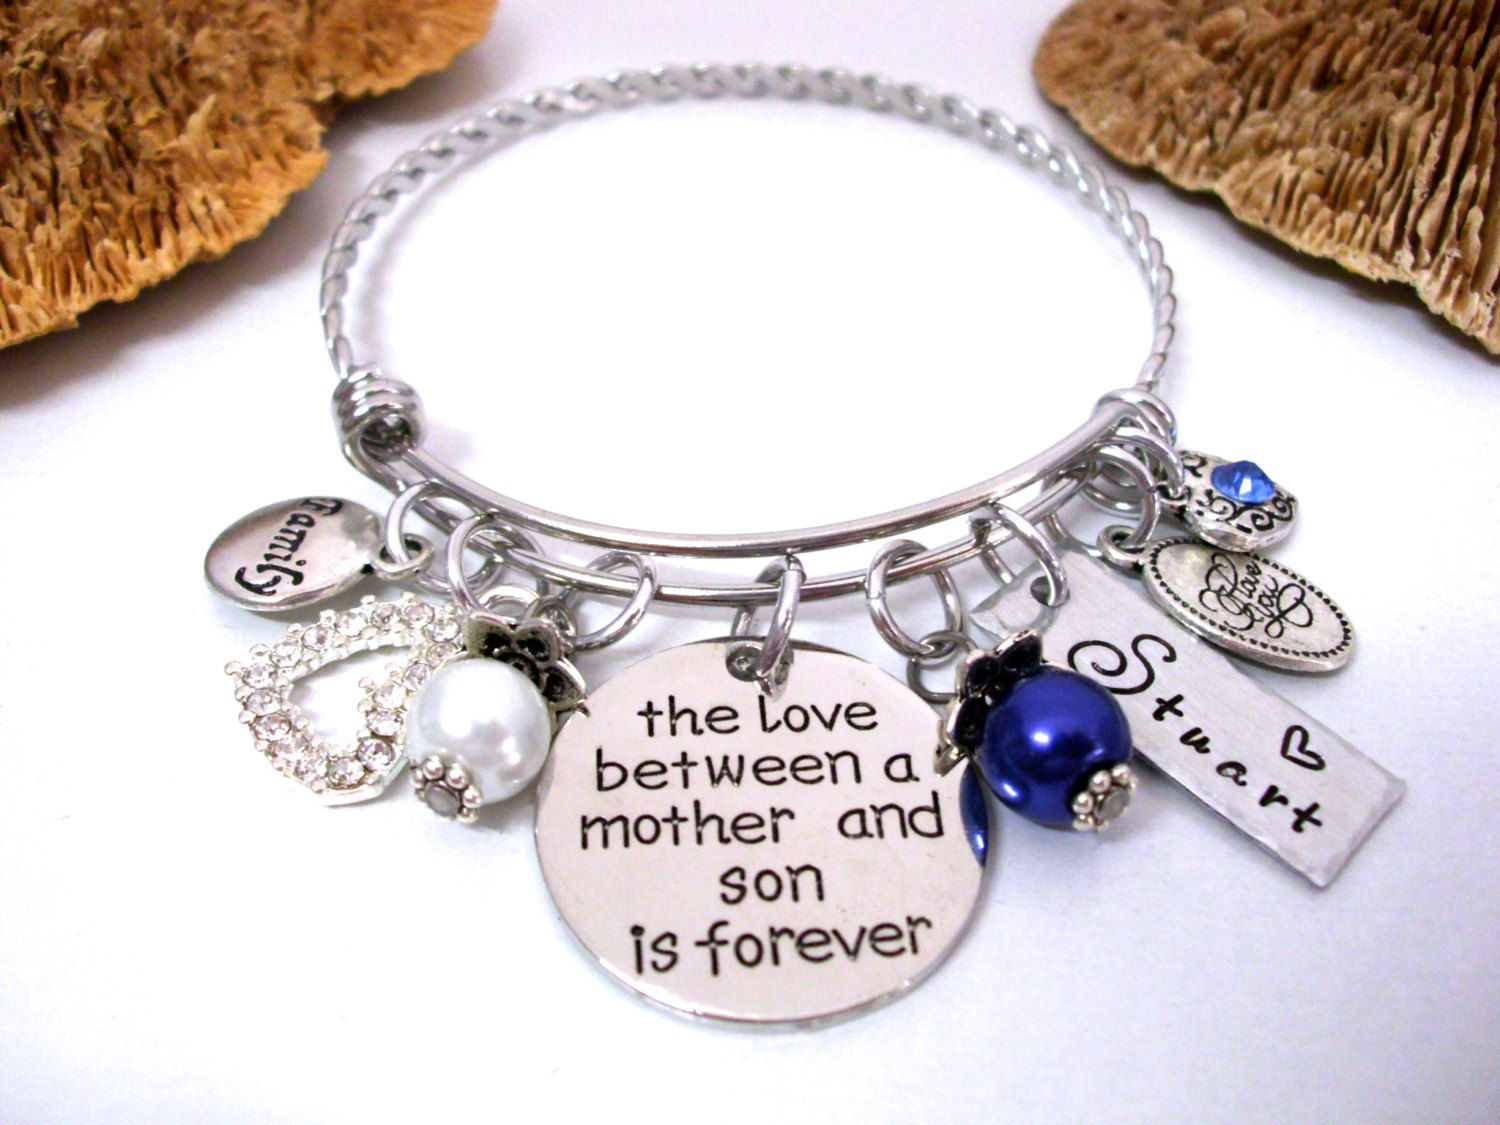 Mother And Son Jewelry Bracelet Personalized Gift For Mom From By Charmaccents On Etsy